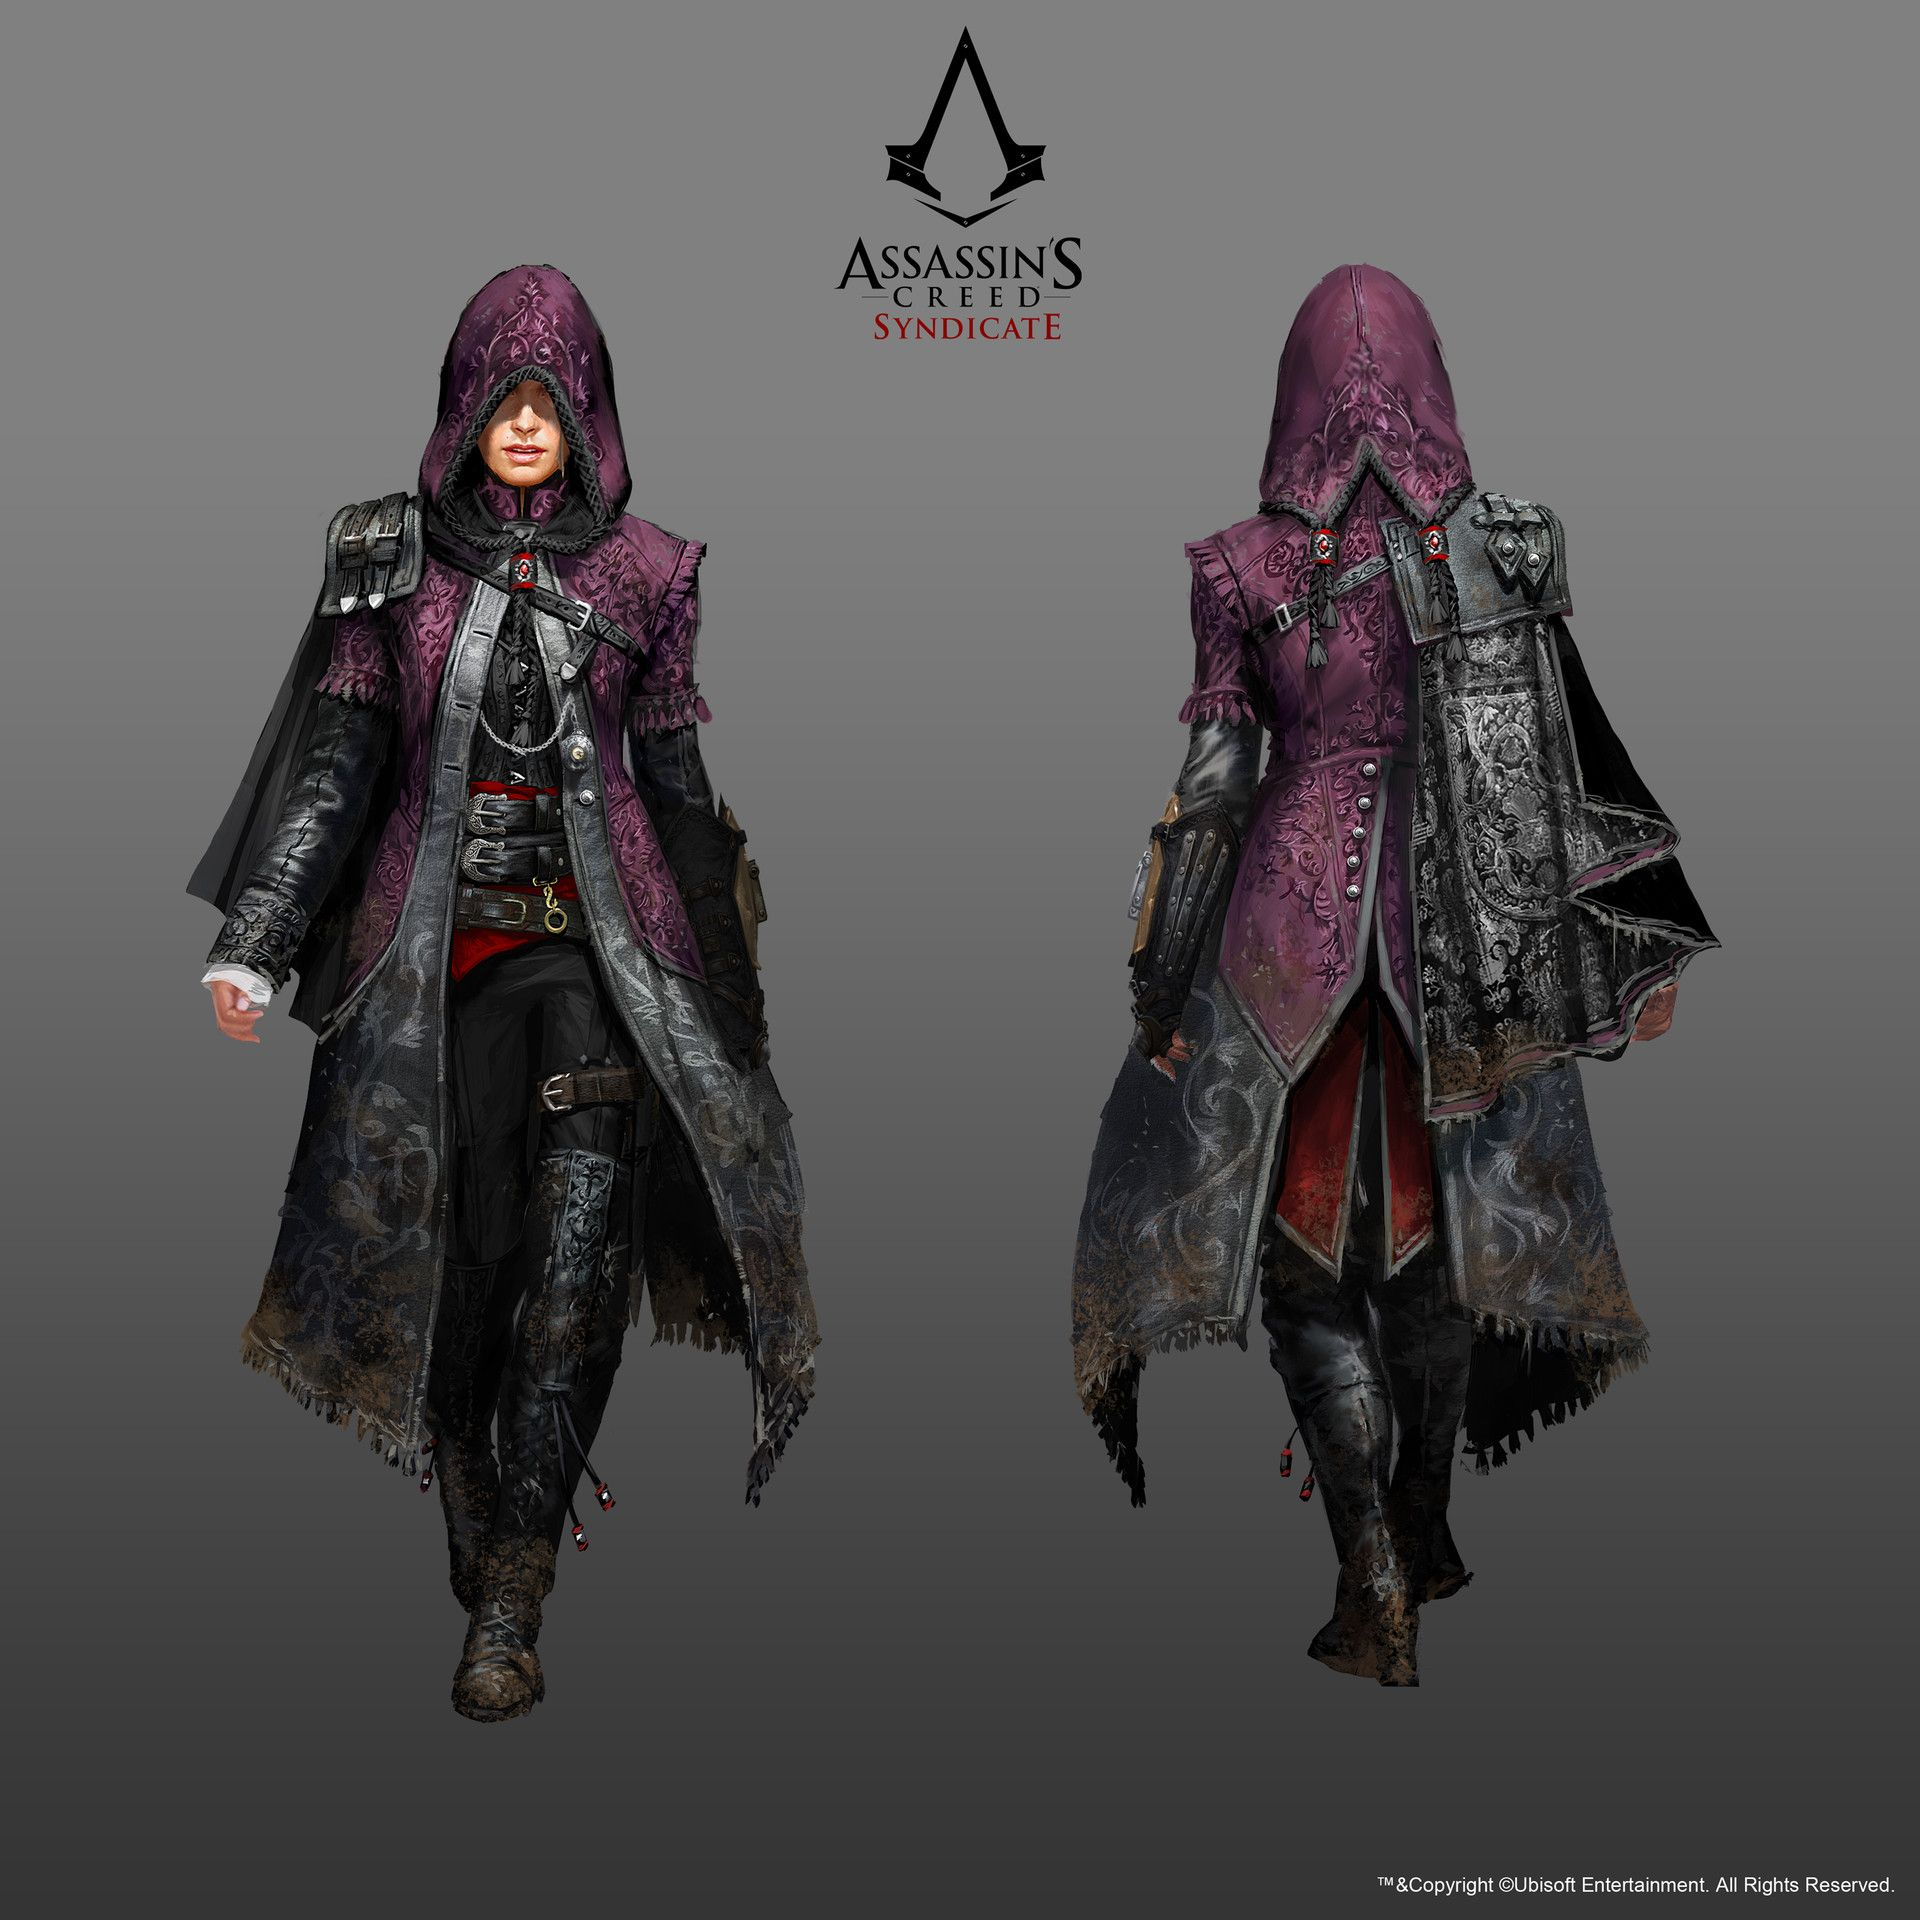 Evie in her Master Assassin outfit Initial sketches of Evie Evie in her standard Assassin attire...